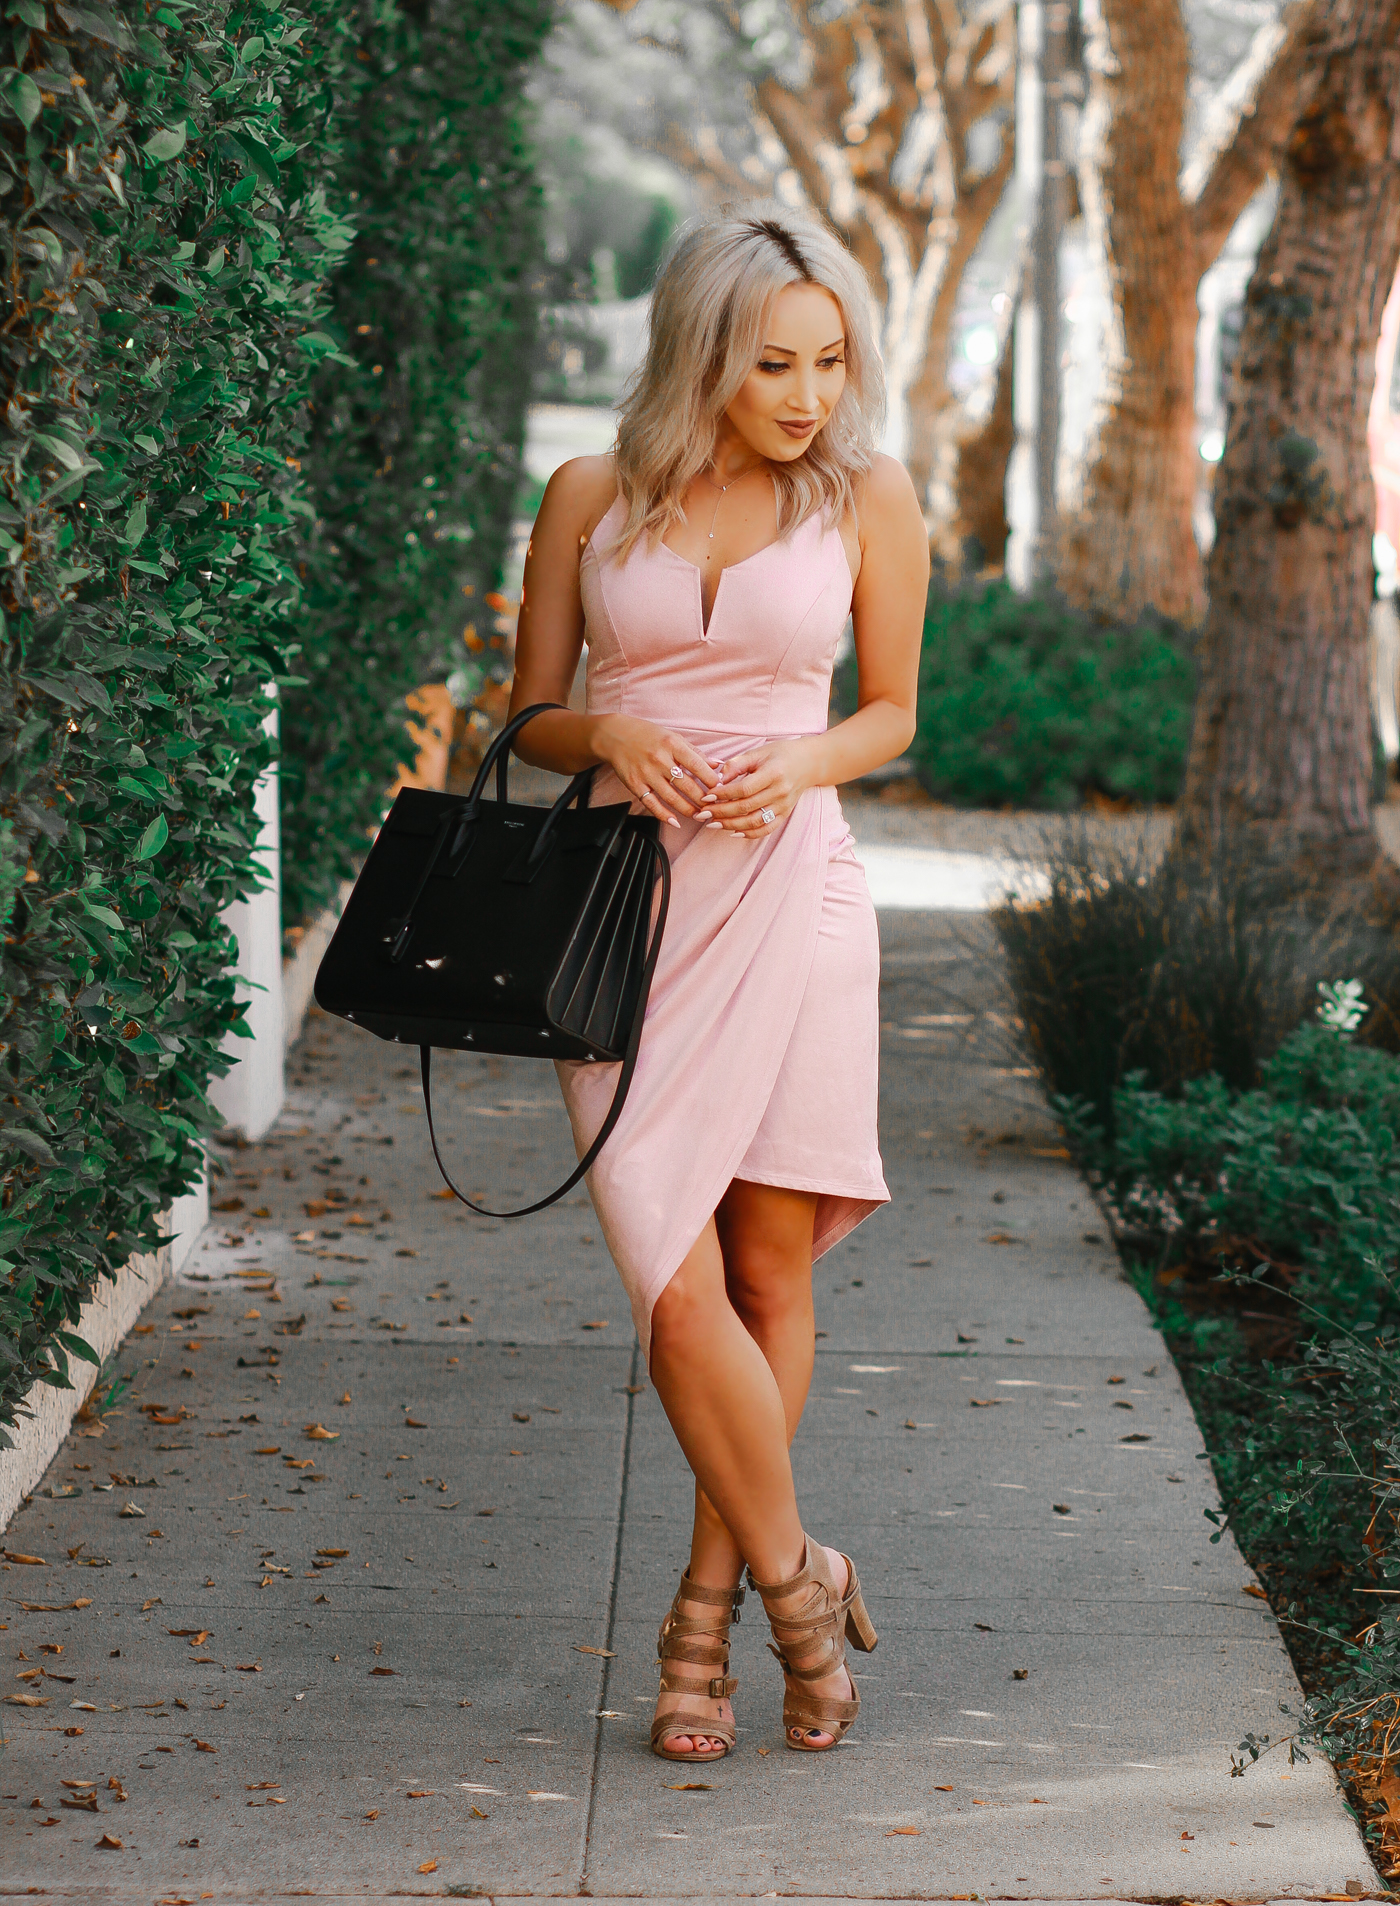 Blondie in the City | Pink Suede Dress